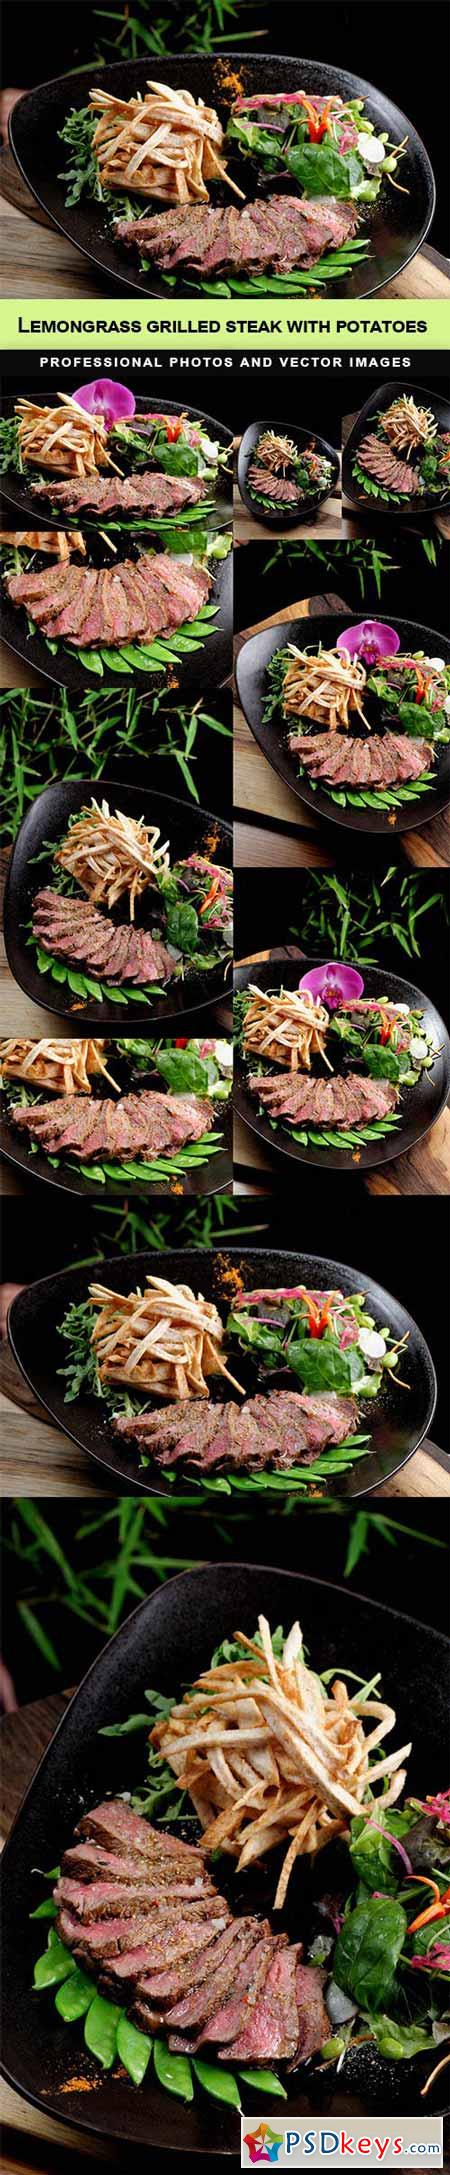 Lemongrass grilled beef steak with potatoes - 10 UHQ JPEG